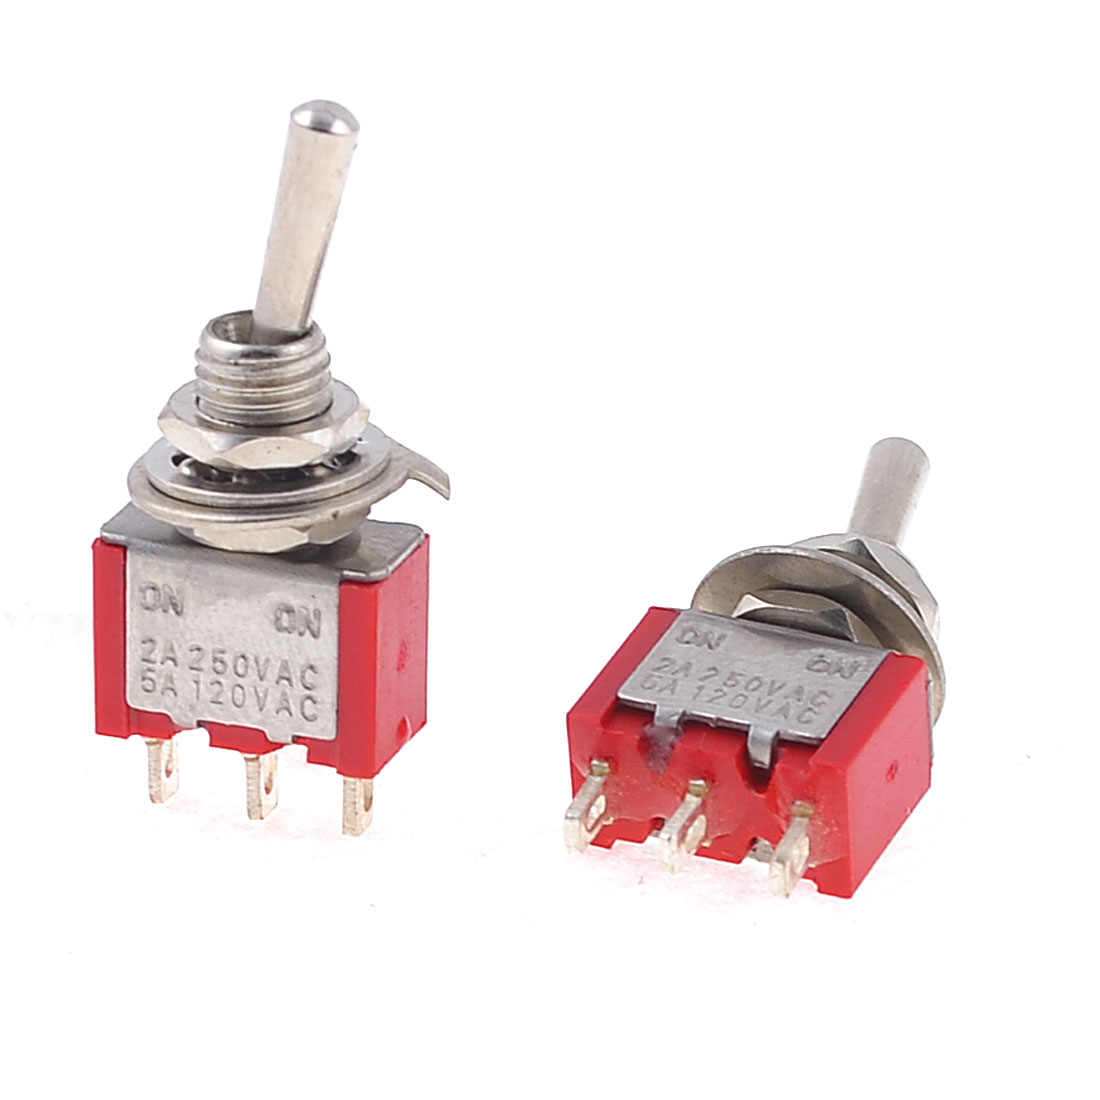 2 Pcs 250VAC 2A 120VAC 5A N/O Normally Open Momentary Pushbutton Switch Red